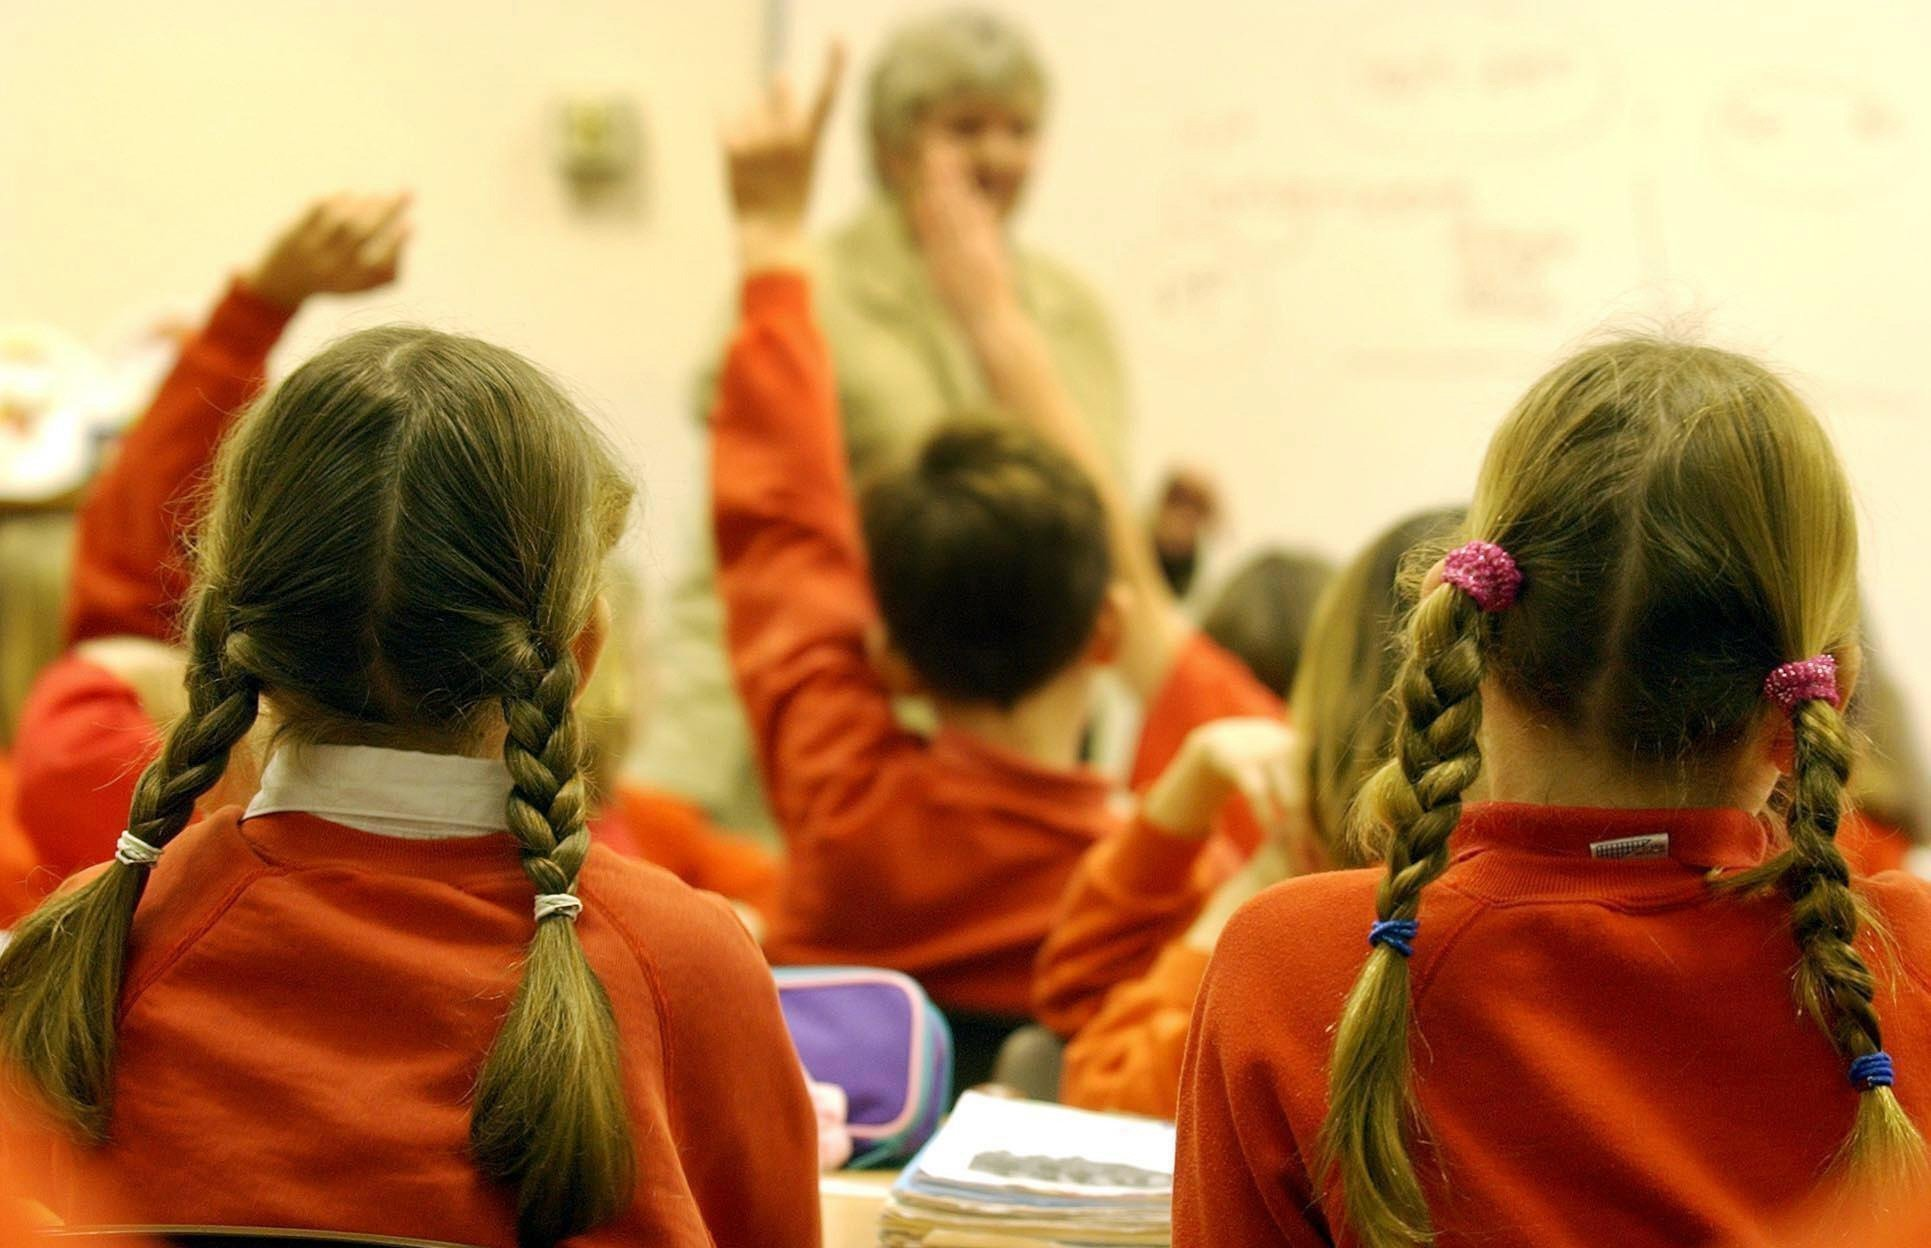 Mums six times more likely to be prosecuted for child's truancy